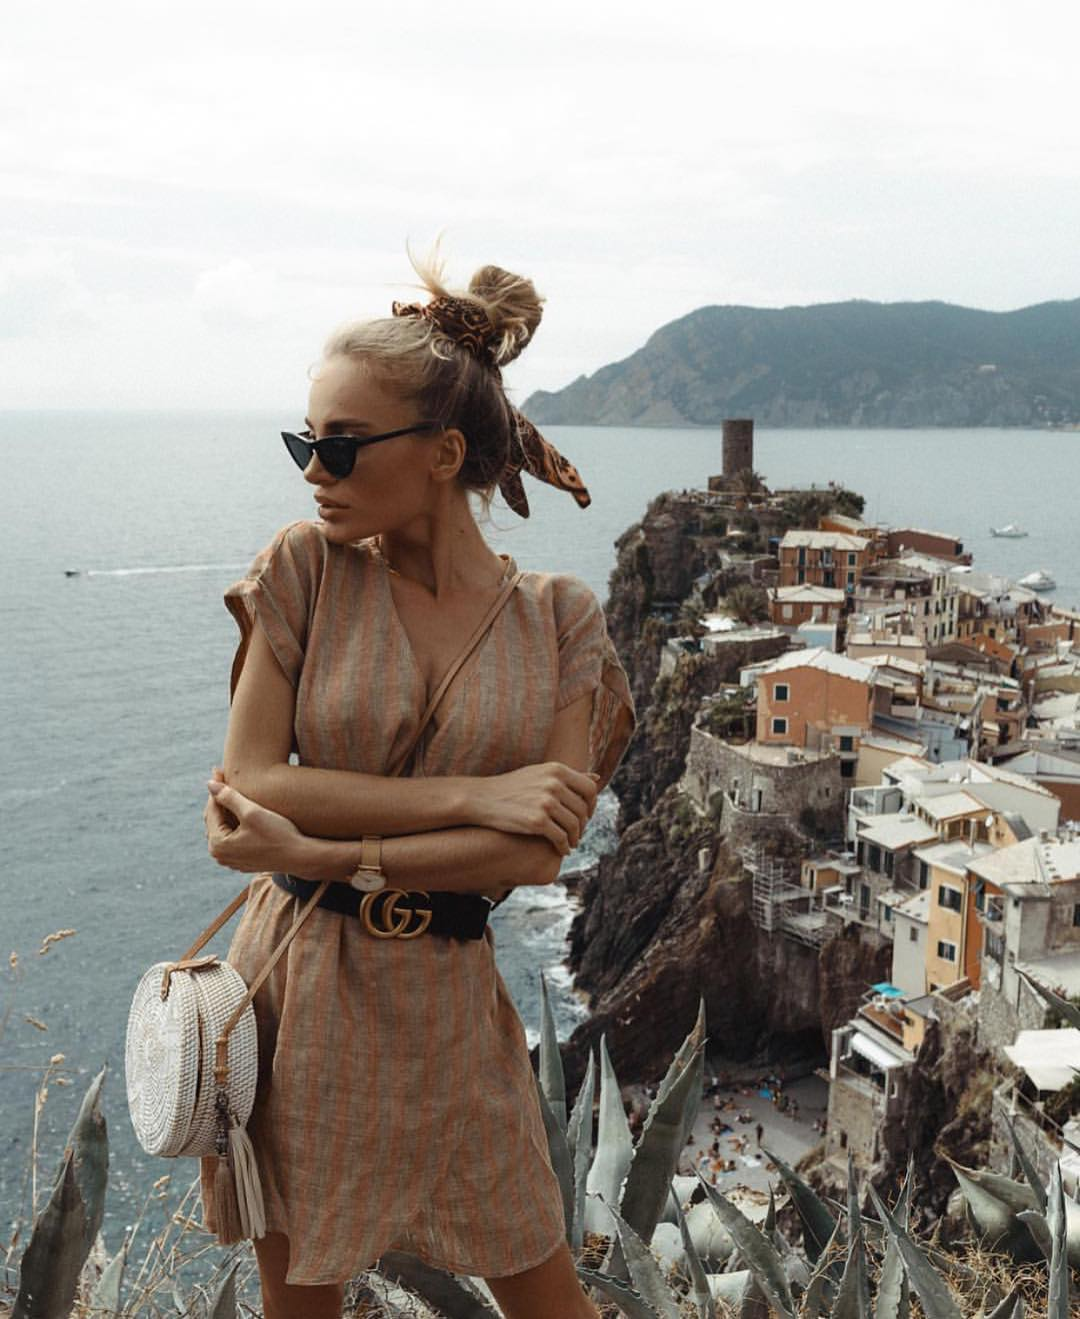 Traveling Style: Linen Wrap Dress For Summer In Italy 2020